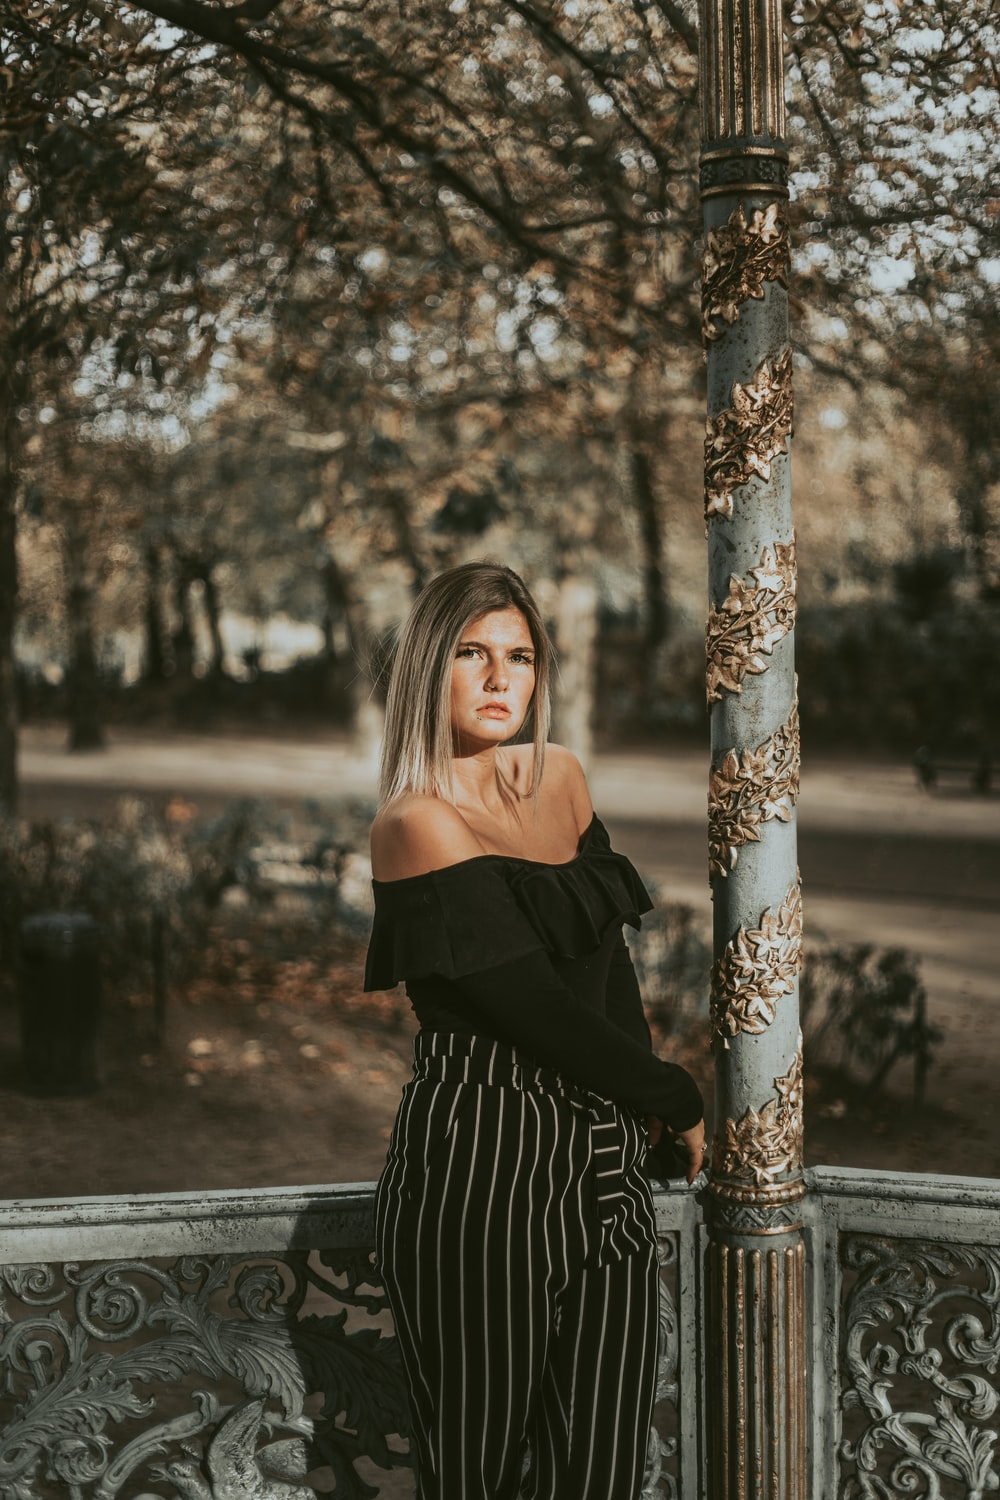 woman wearing black off-shoulder dress near trees